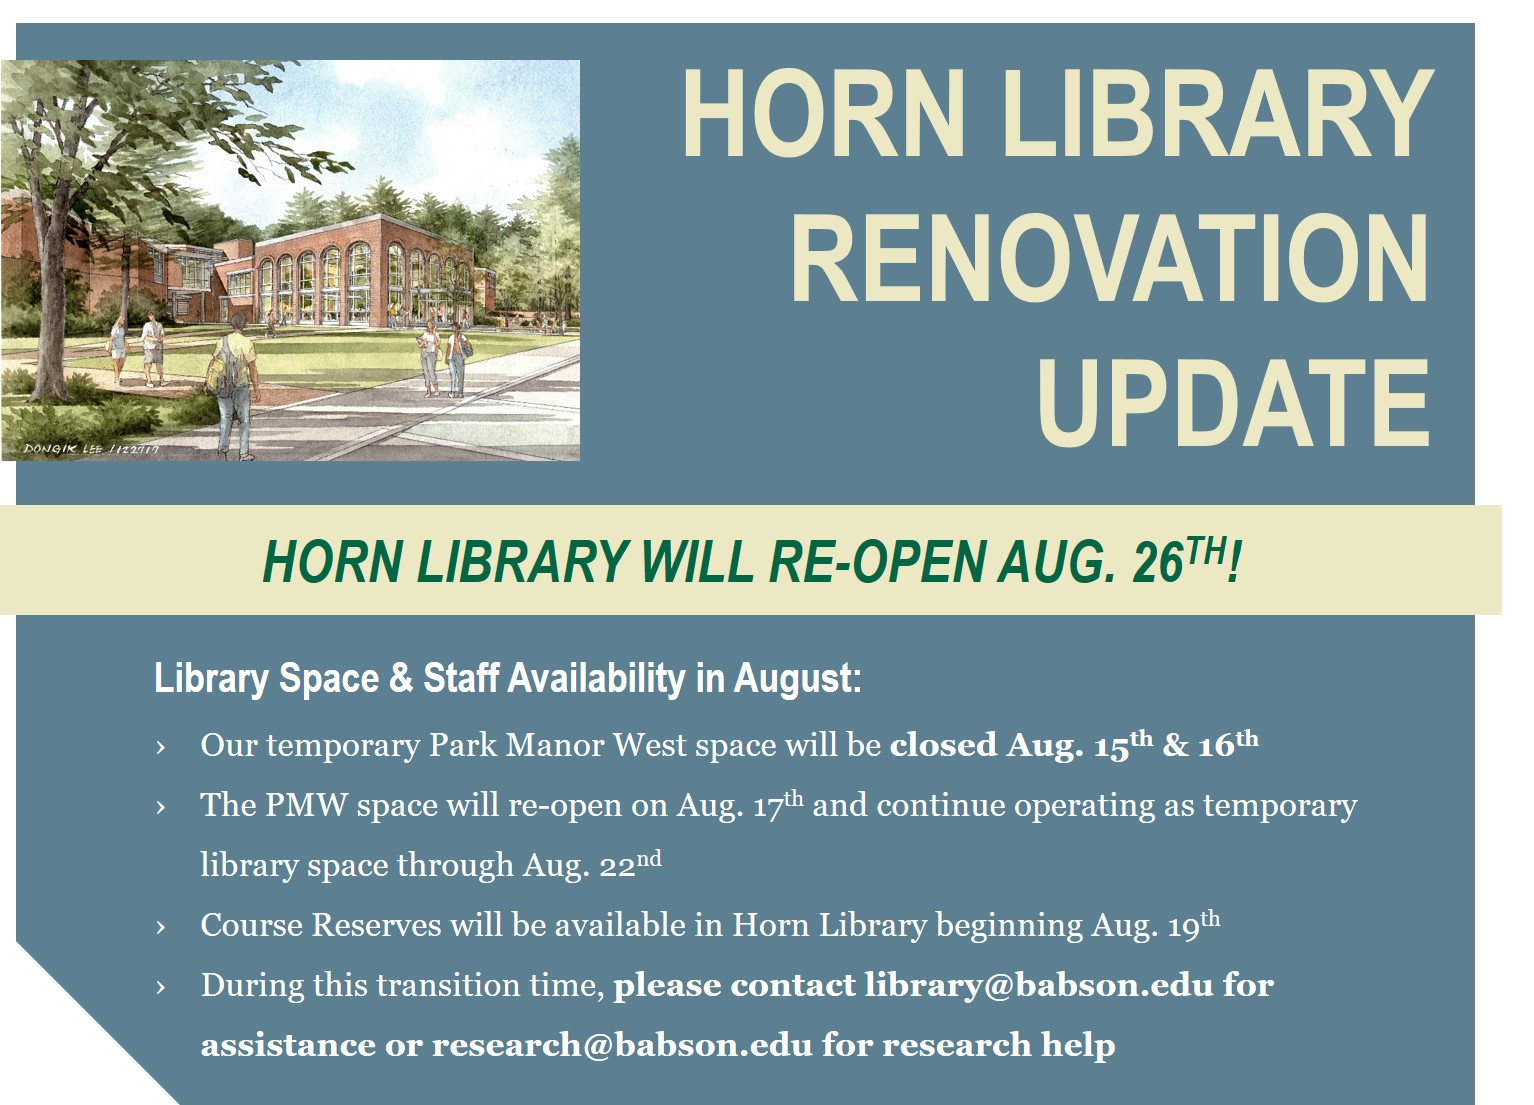 Horn Library Renovation Update